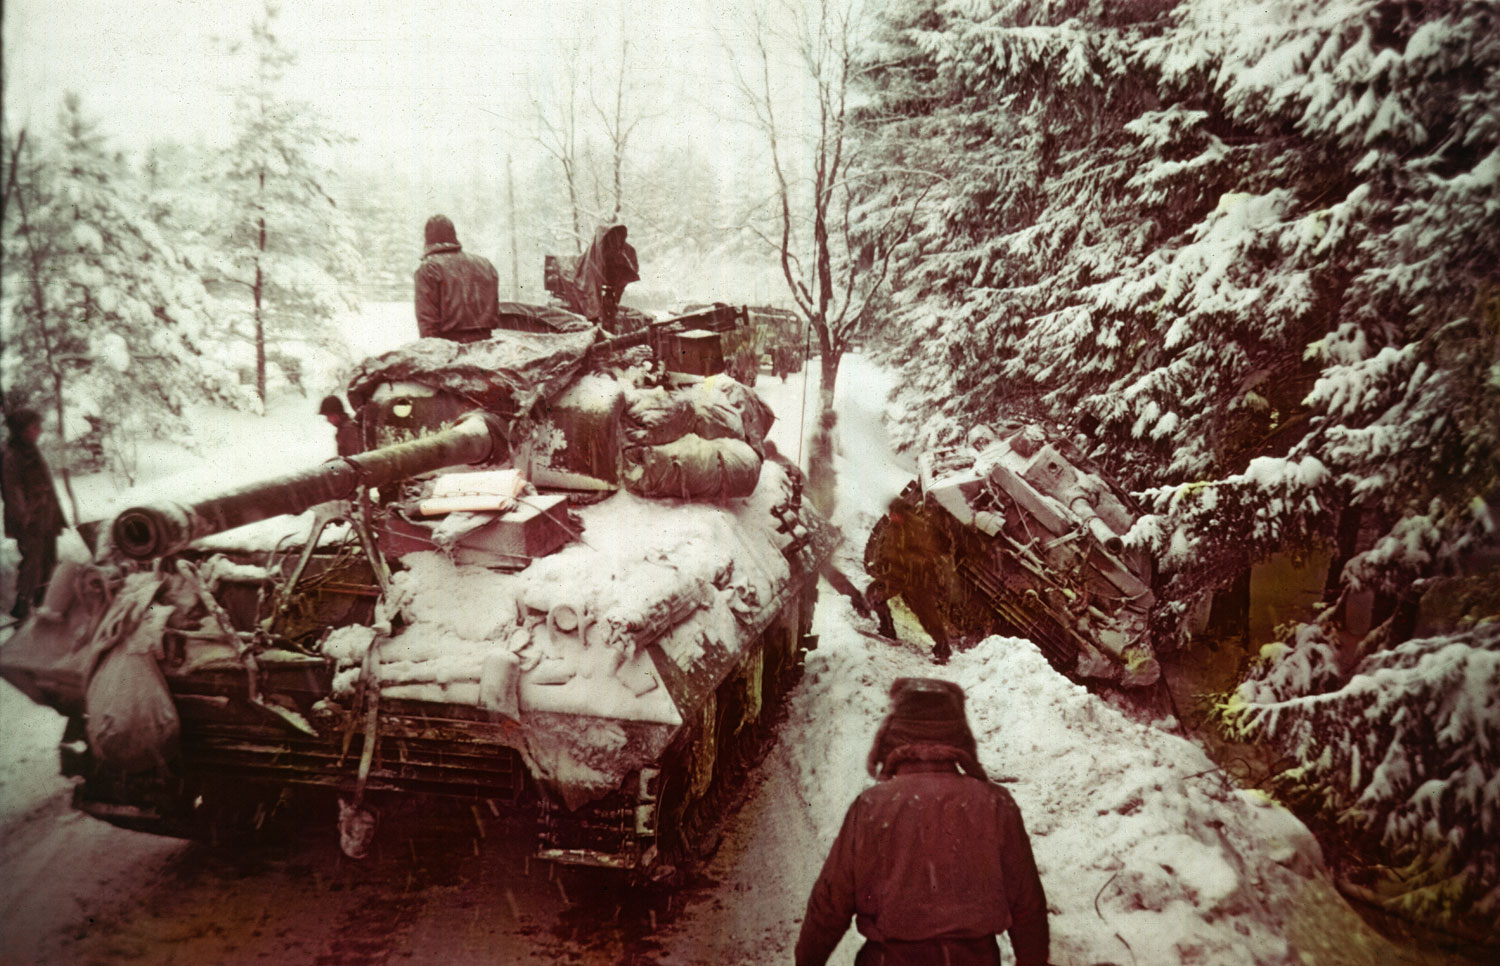 An American tank moves past another gun carriage which slid off an icy road in the Ardennes Forest during the Battle of the Bulge, Dec. 20, 1944.